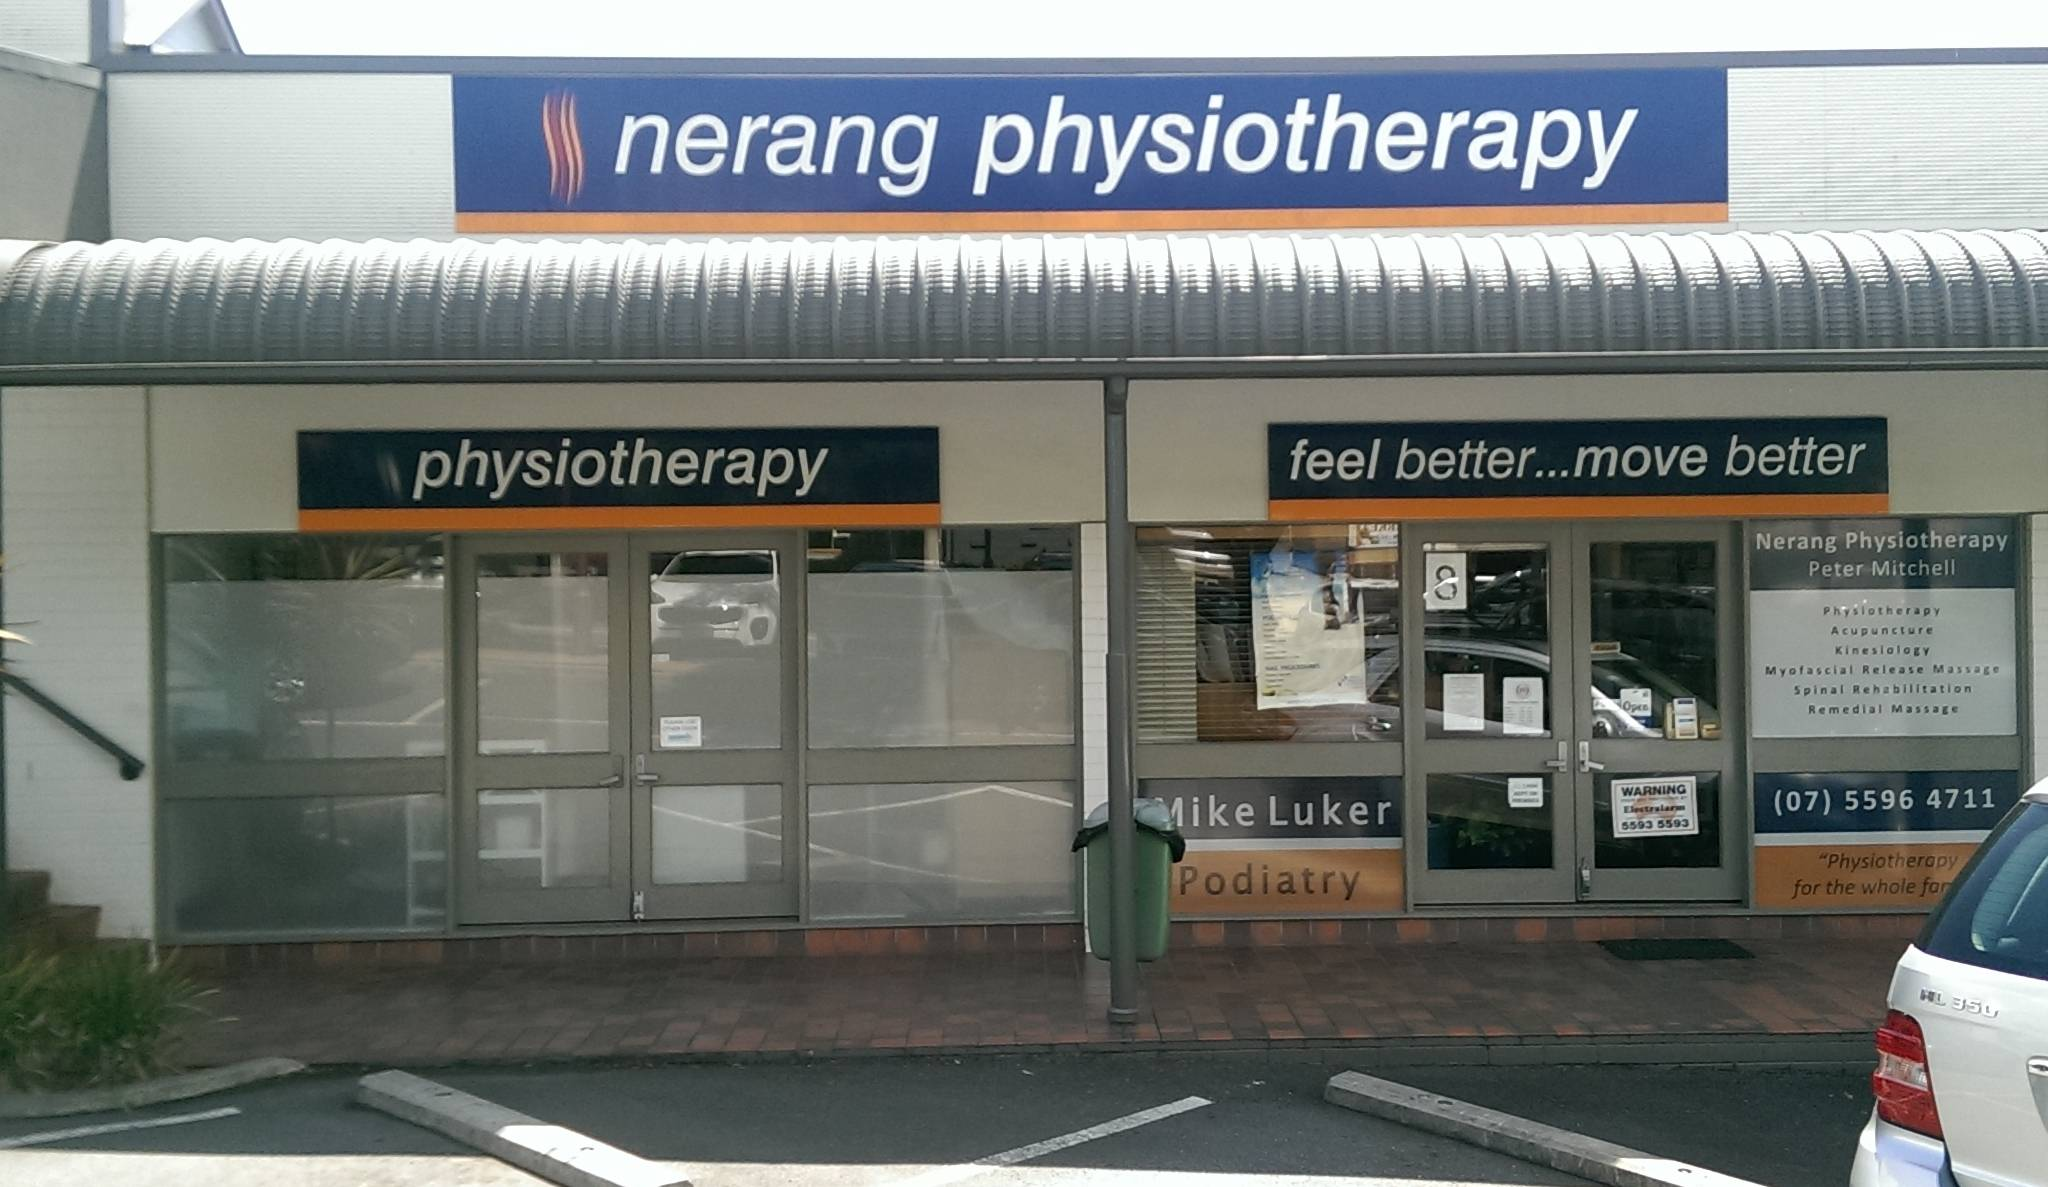 Nerang Physiotherapy, Unit 8/5-7 Lavelle Street, Nerang, Queensland, 4211, Australia